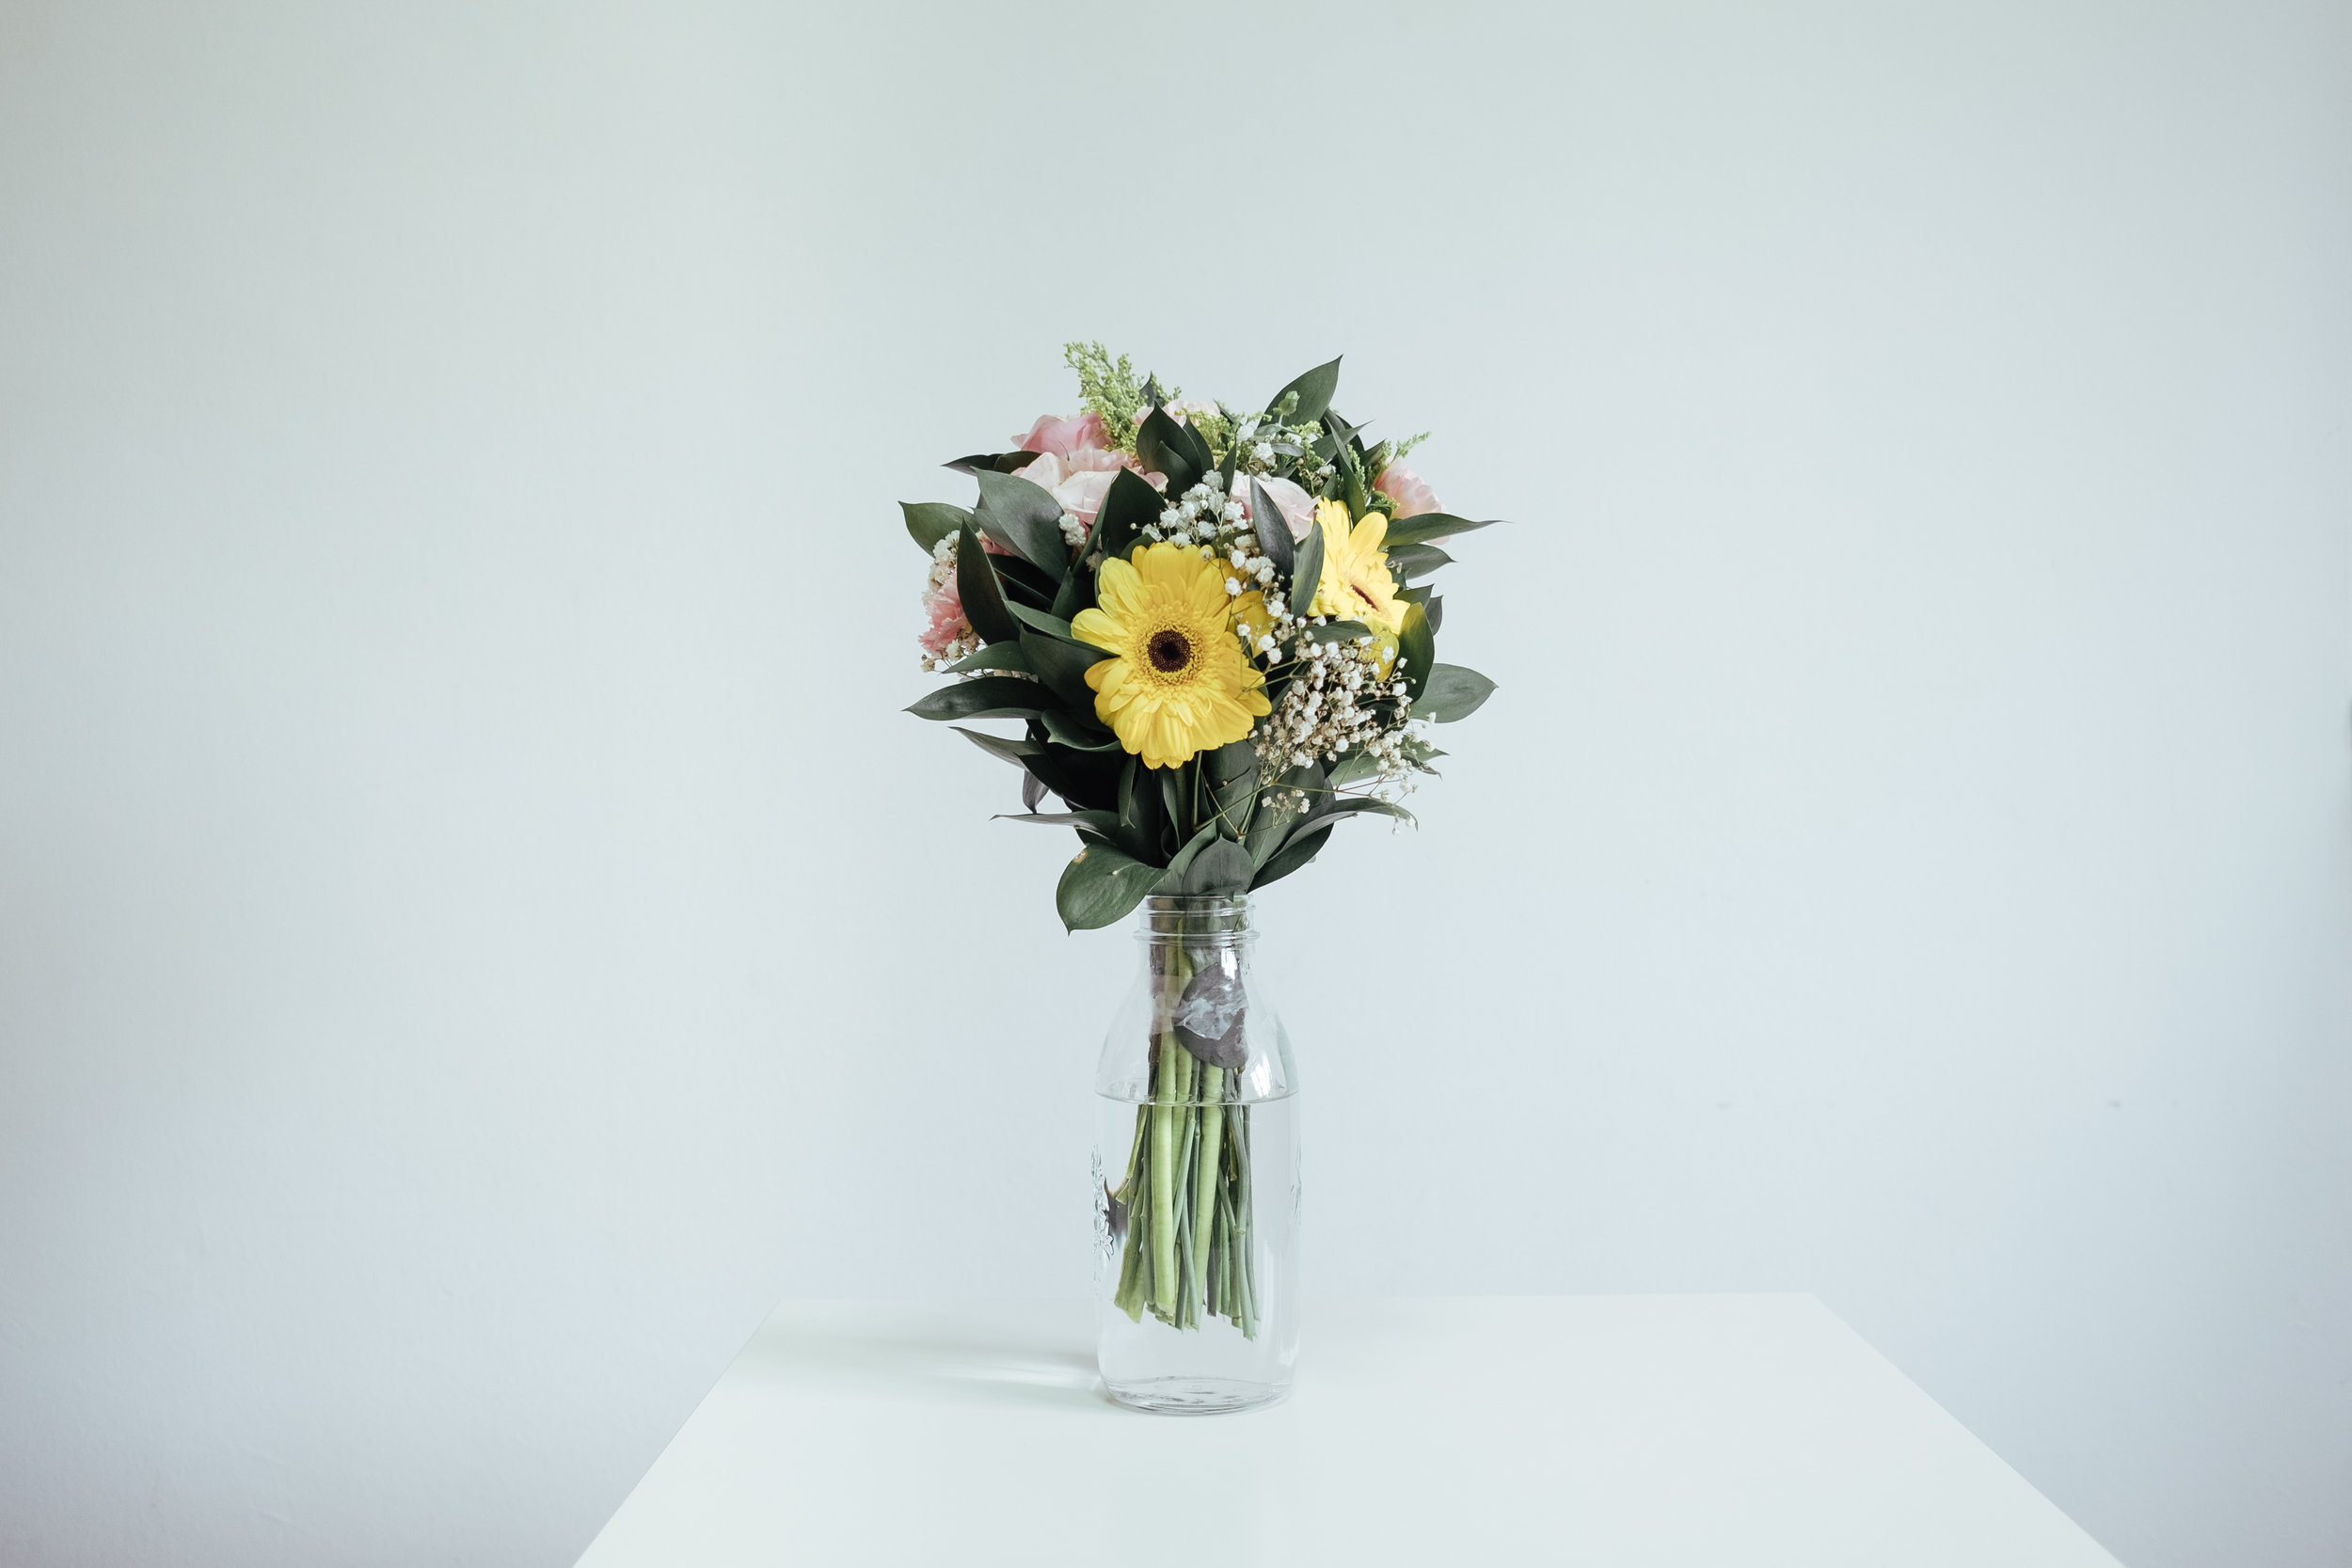 abetterflorist-flowers-photoshoot-10